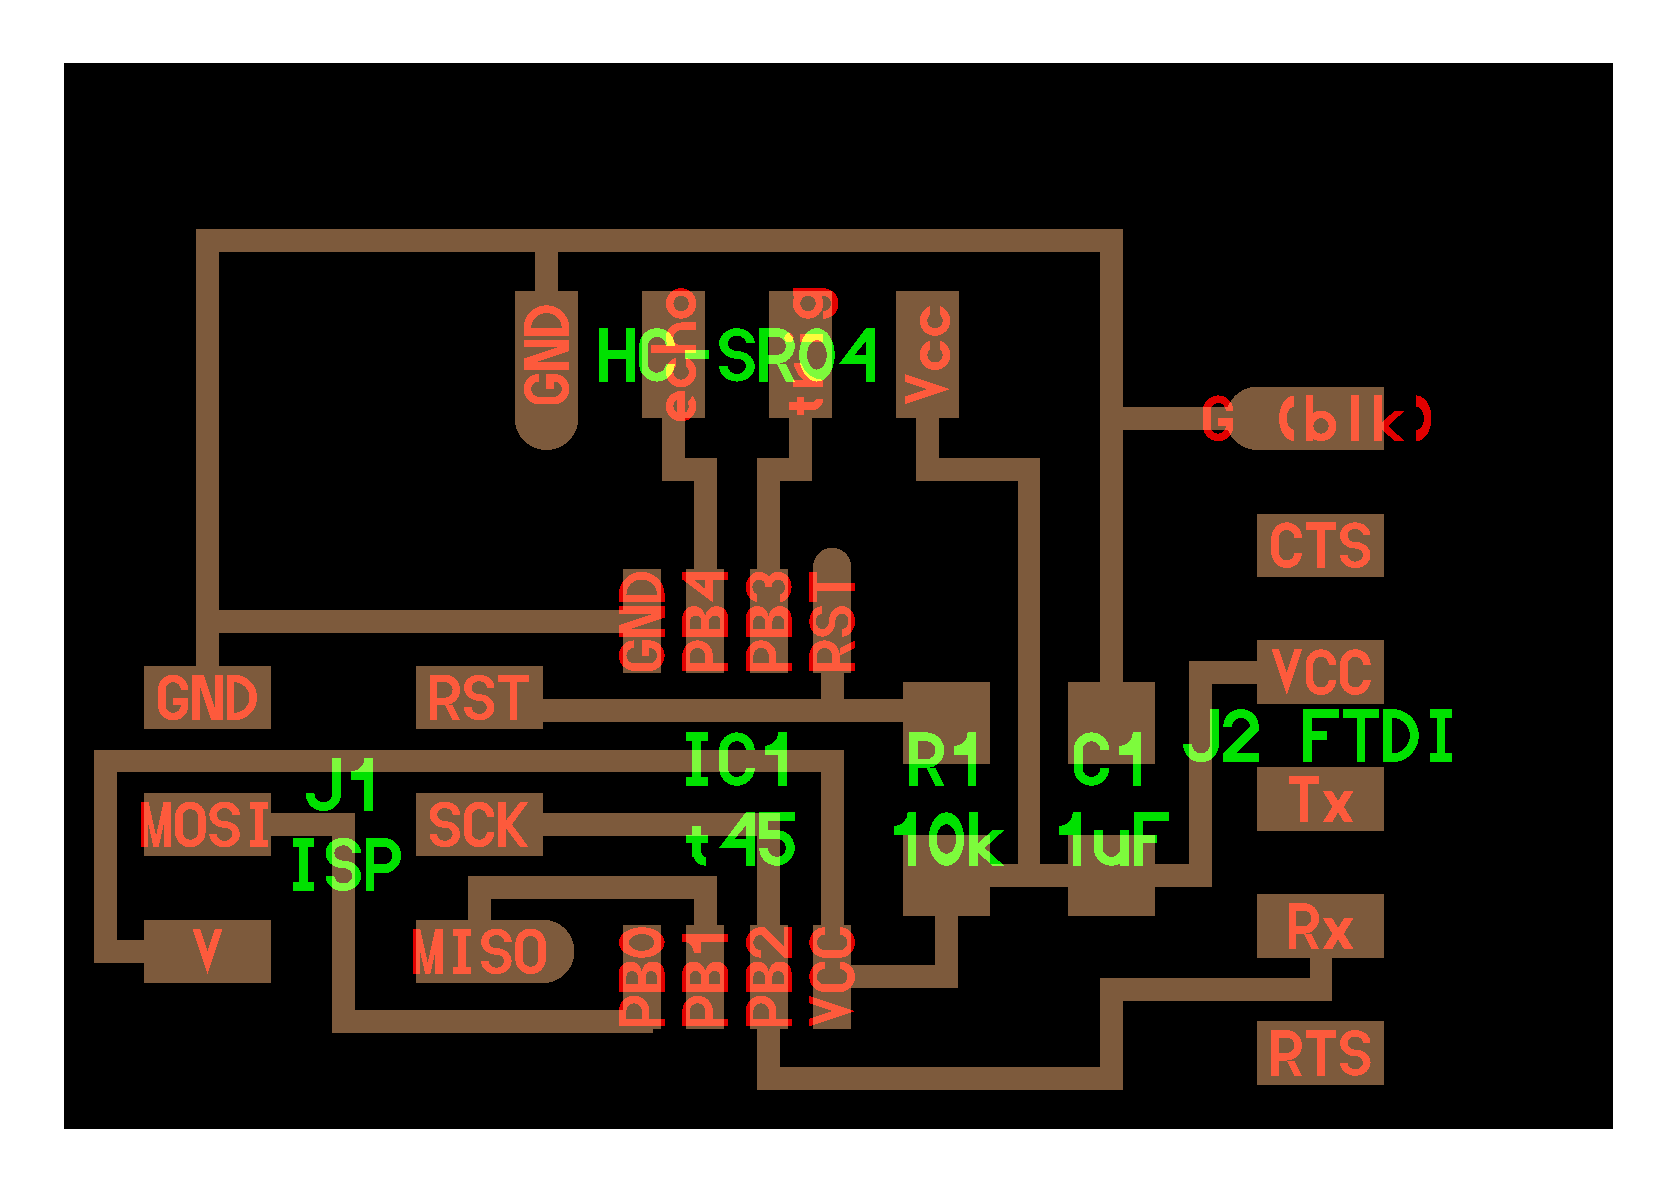 Vincentdupuis Hc Sr04 Schematic Additionally Reverse Switch Wiring Diagram It Is Based On A Attiny45 Microcontroller And Includes 6 Pin Header The Left Of Figure For Isp Programming As Well Ftdi